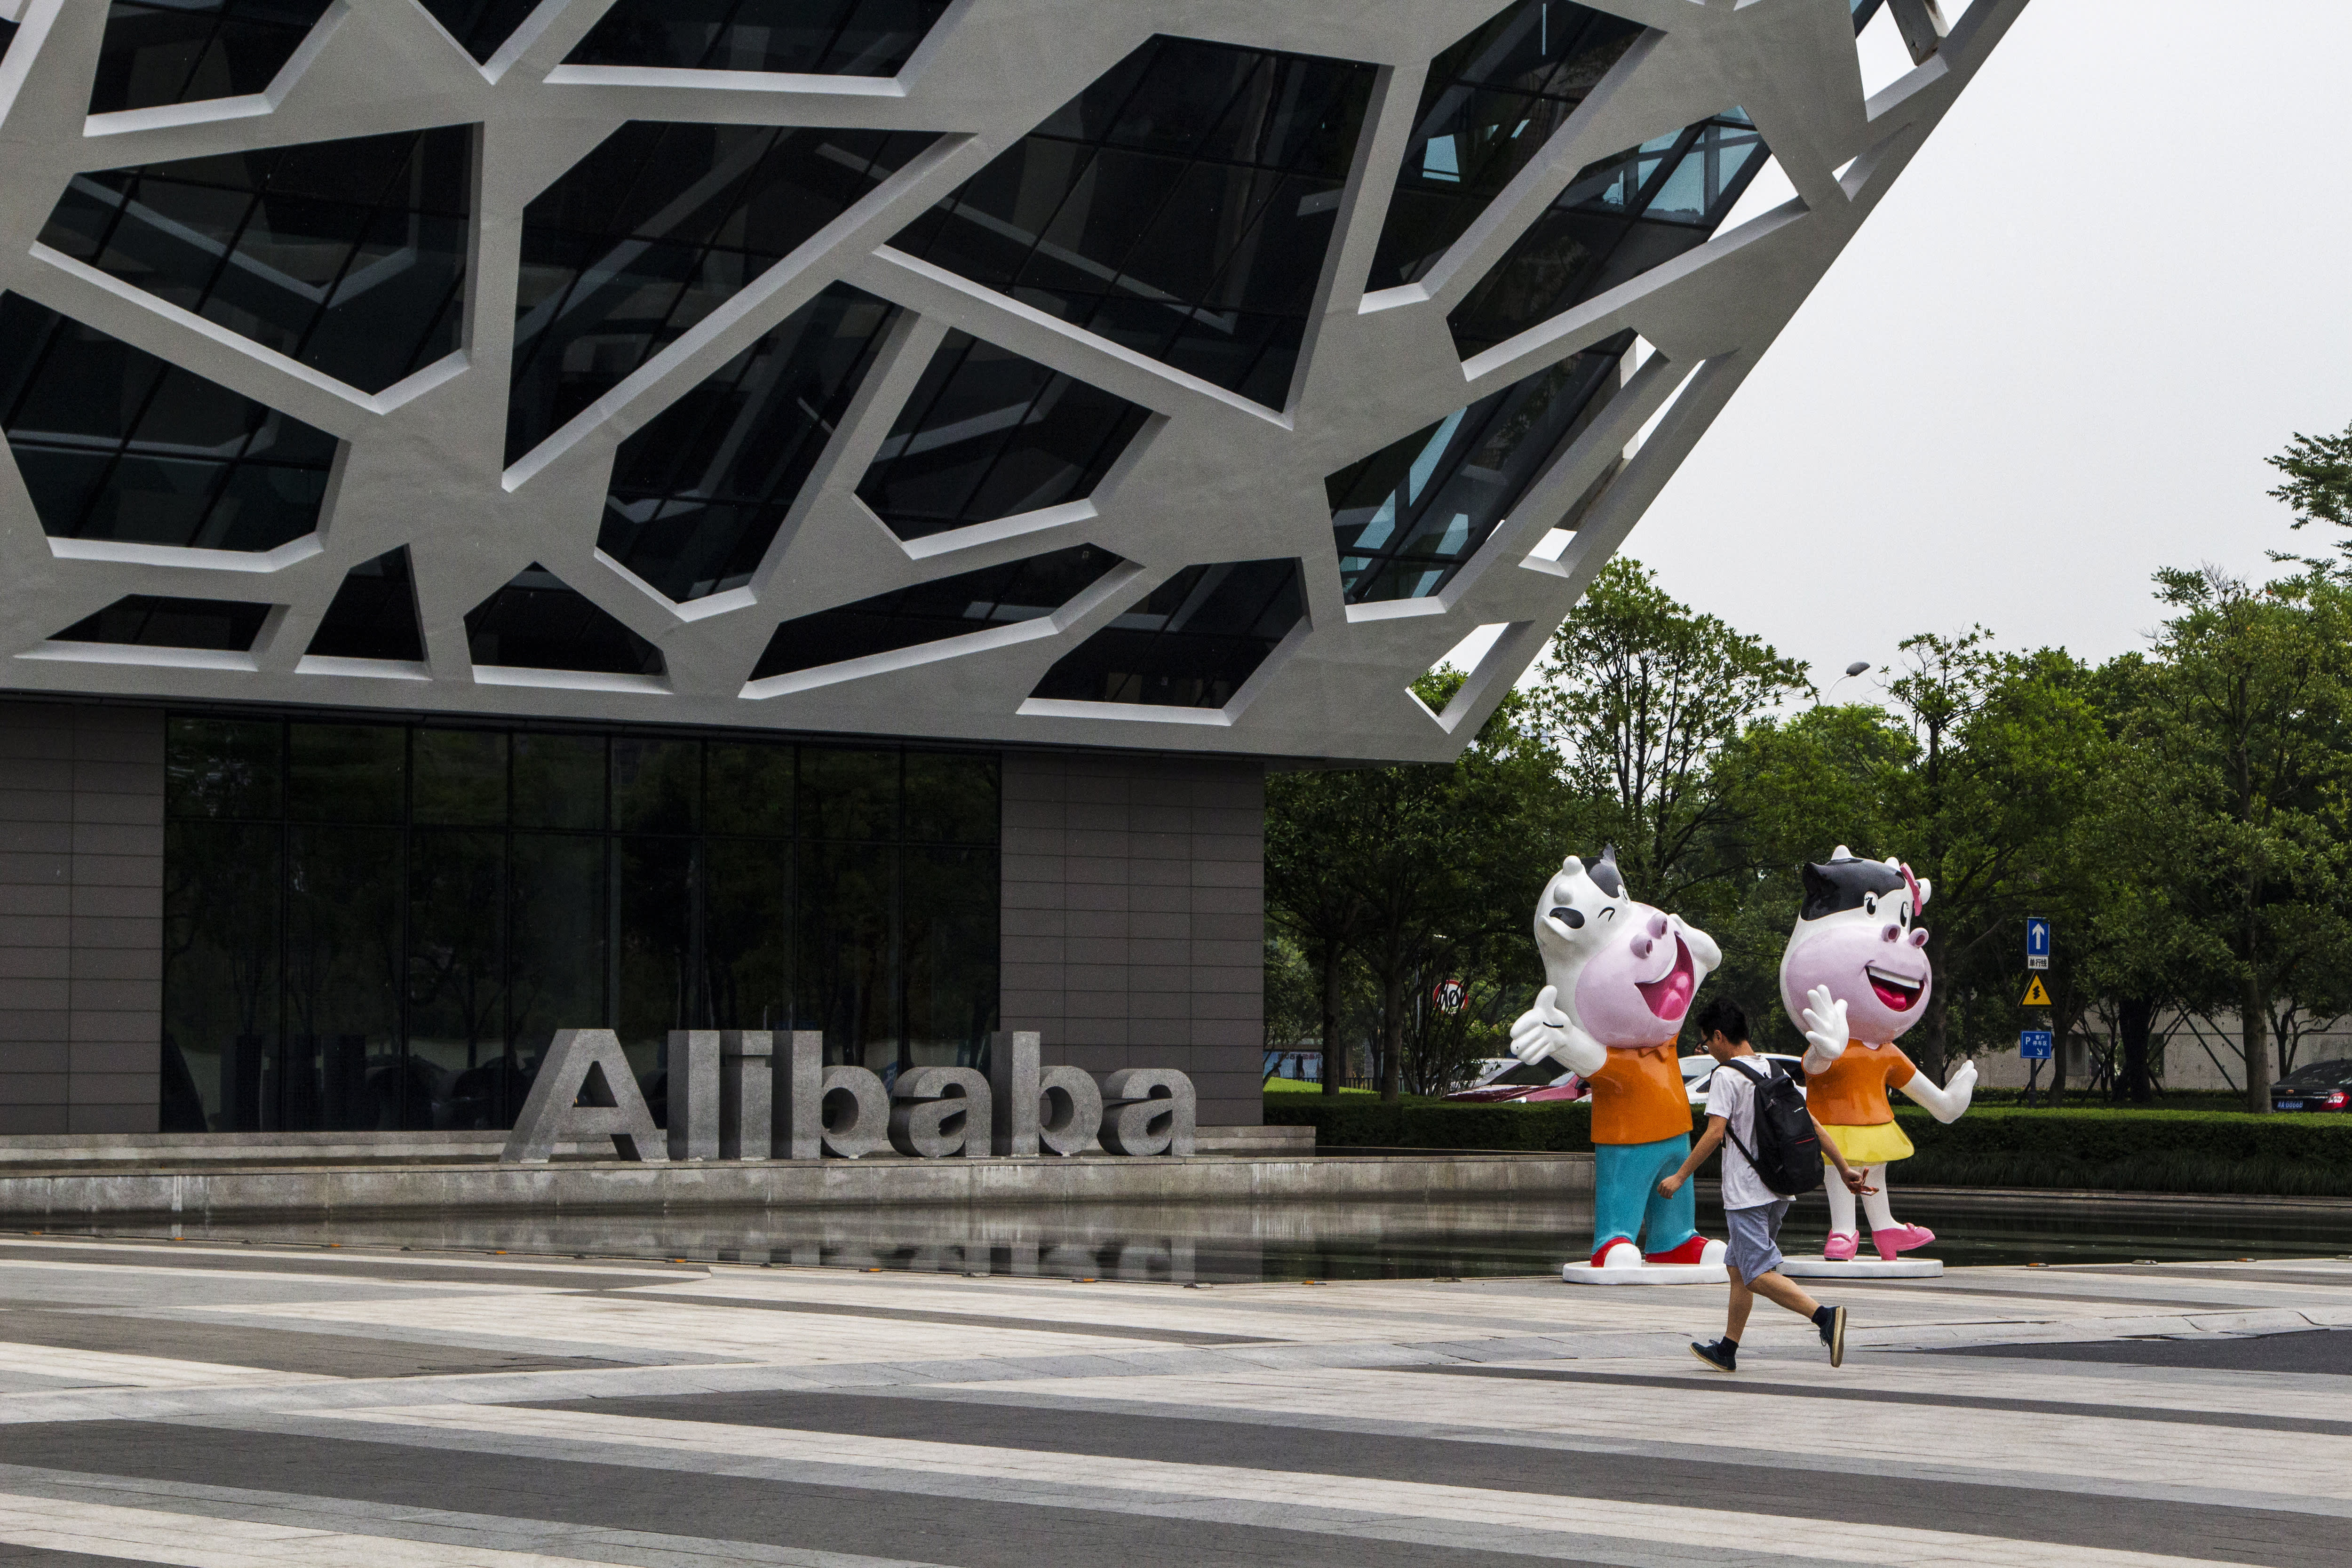 We went inside Alibaba's global headquarters. Here's what we saw